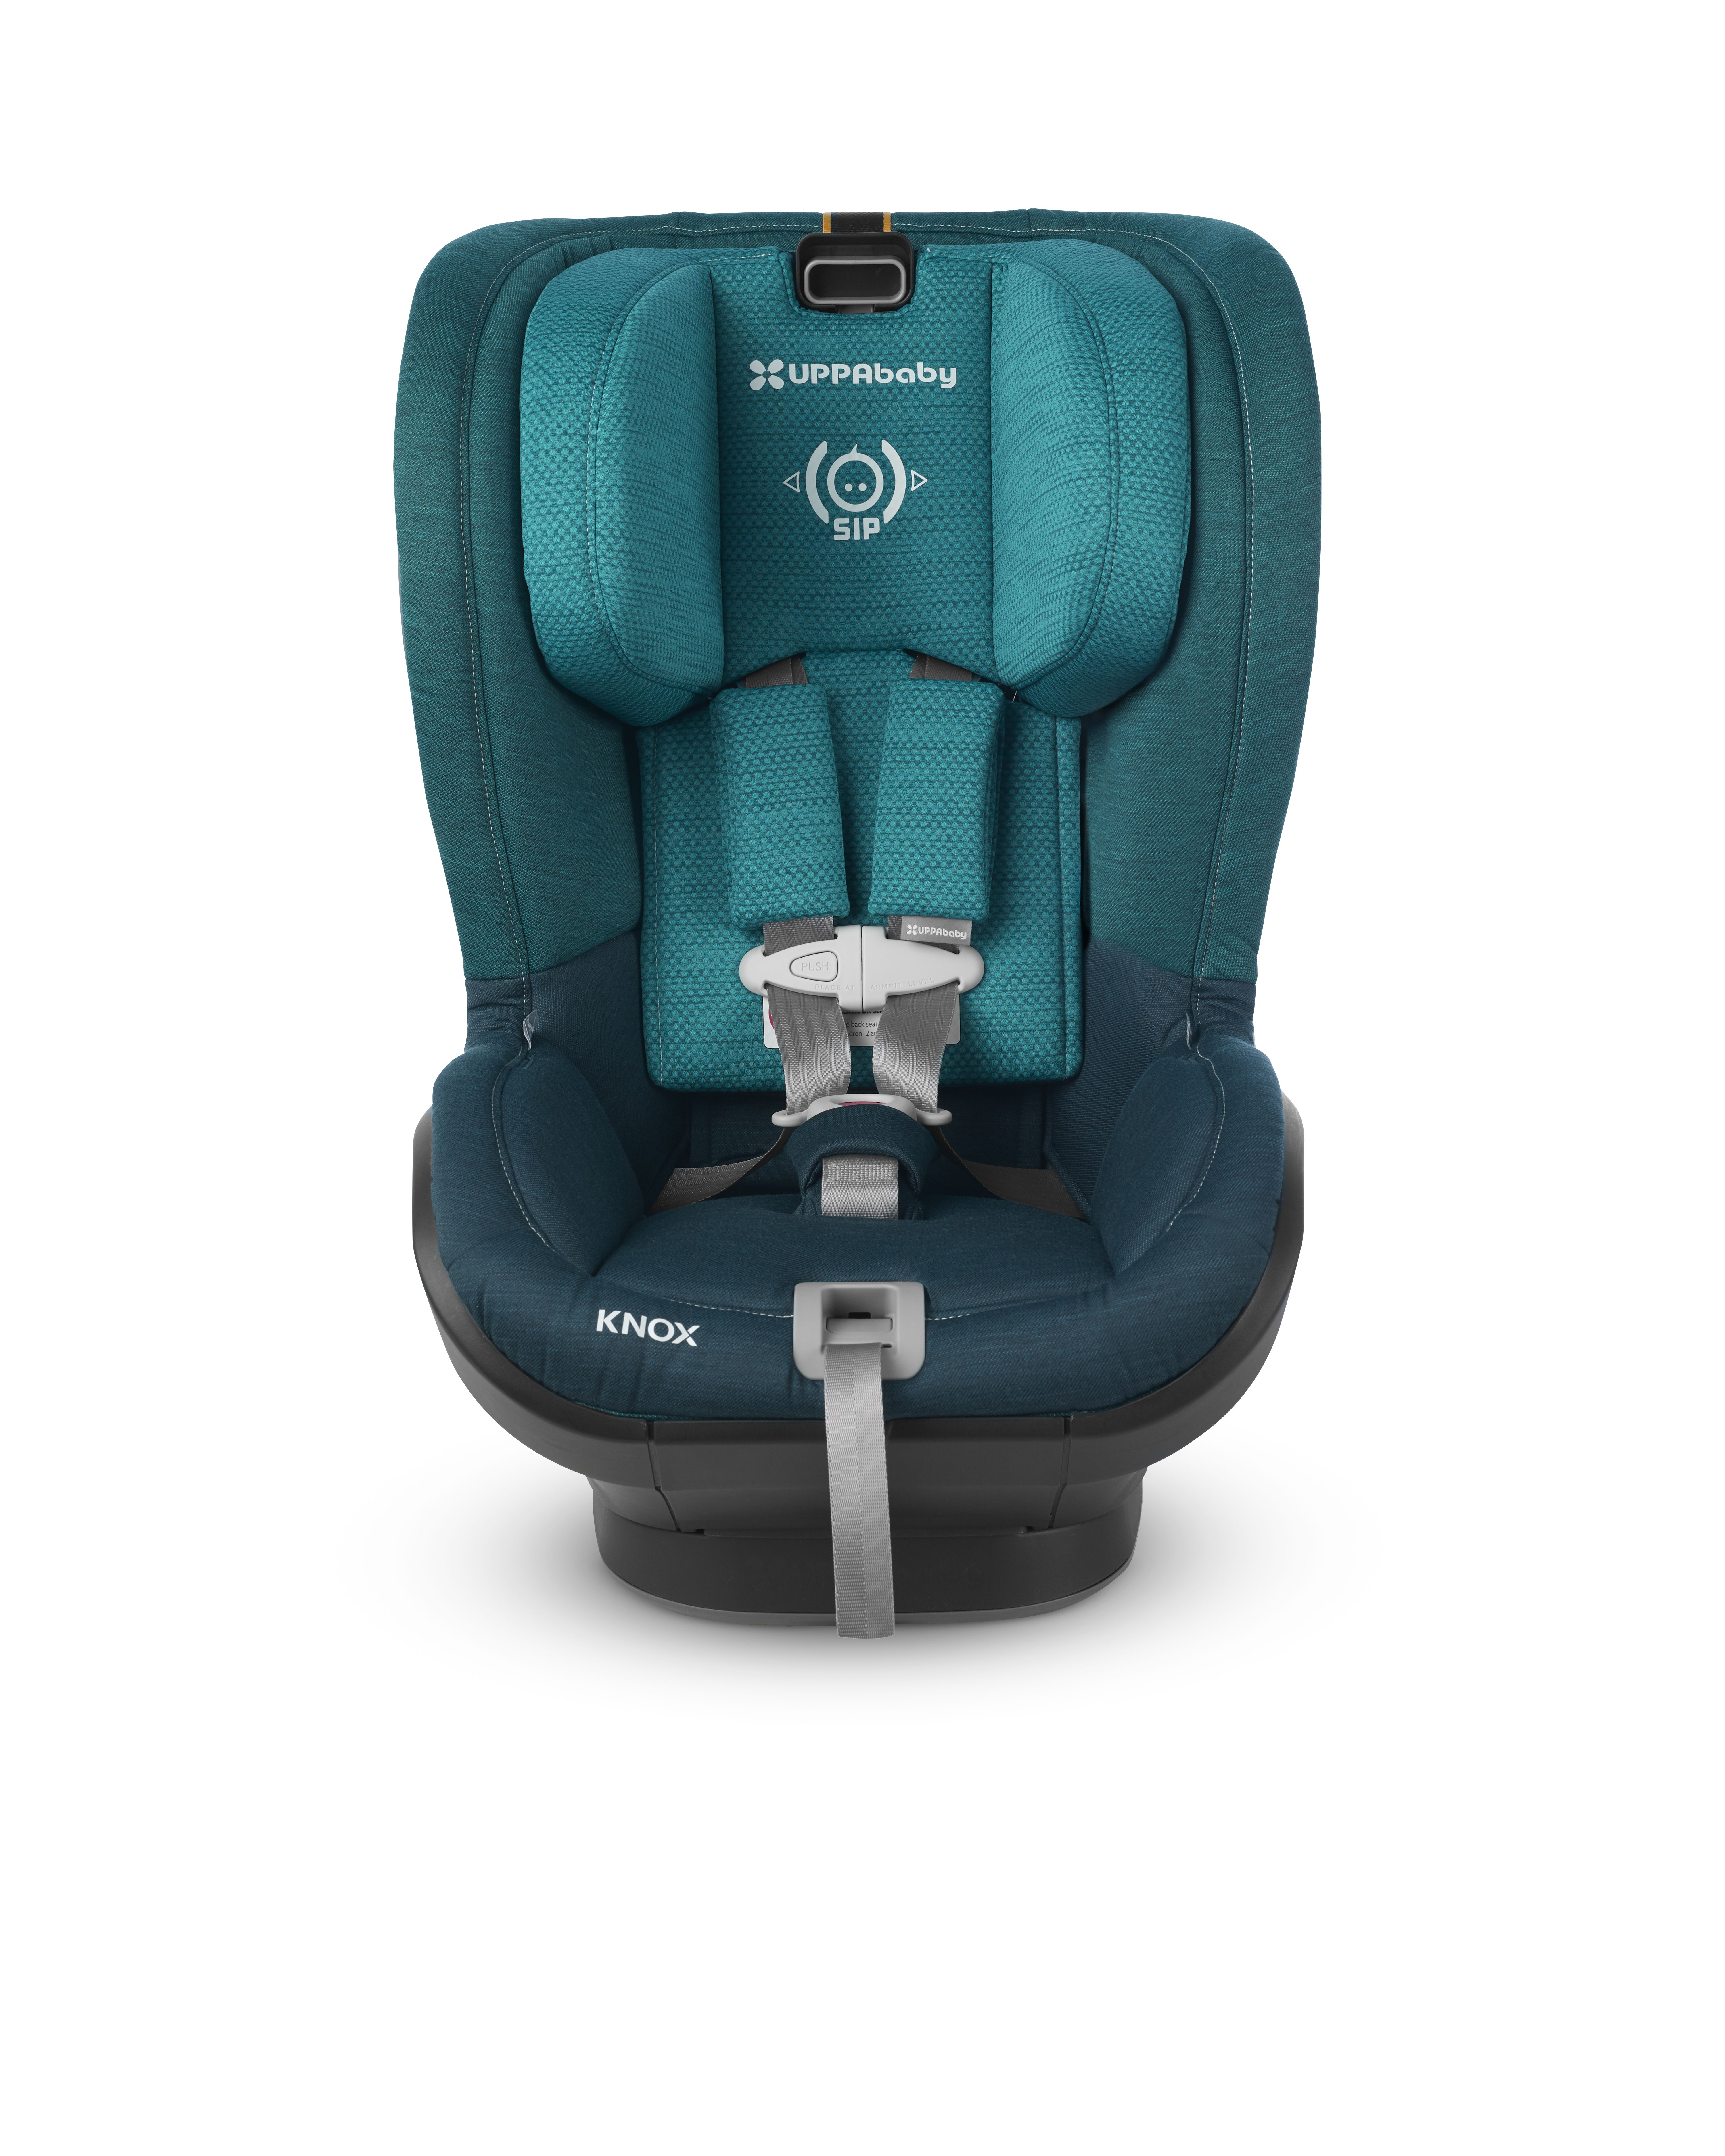 Uppababy Knox Convertible Car Seat Full In Depth Review Photos